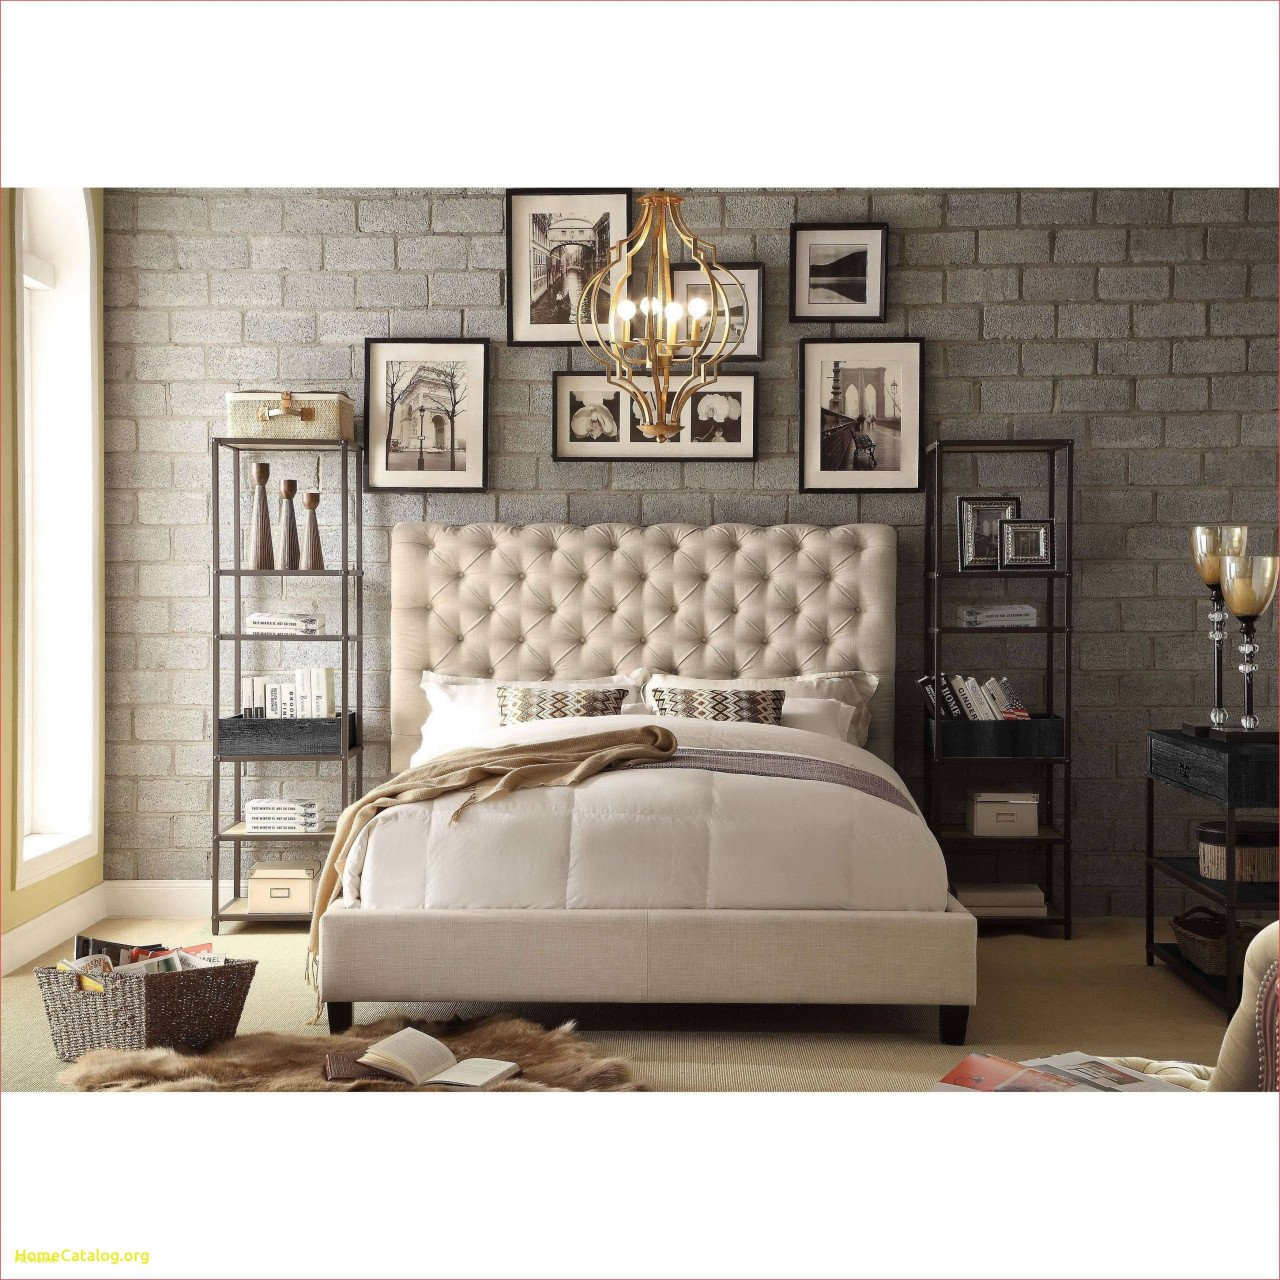 3 Pice Bedroom Set Luxury Gothic Bedroom Furniture — Procura Home Blog